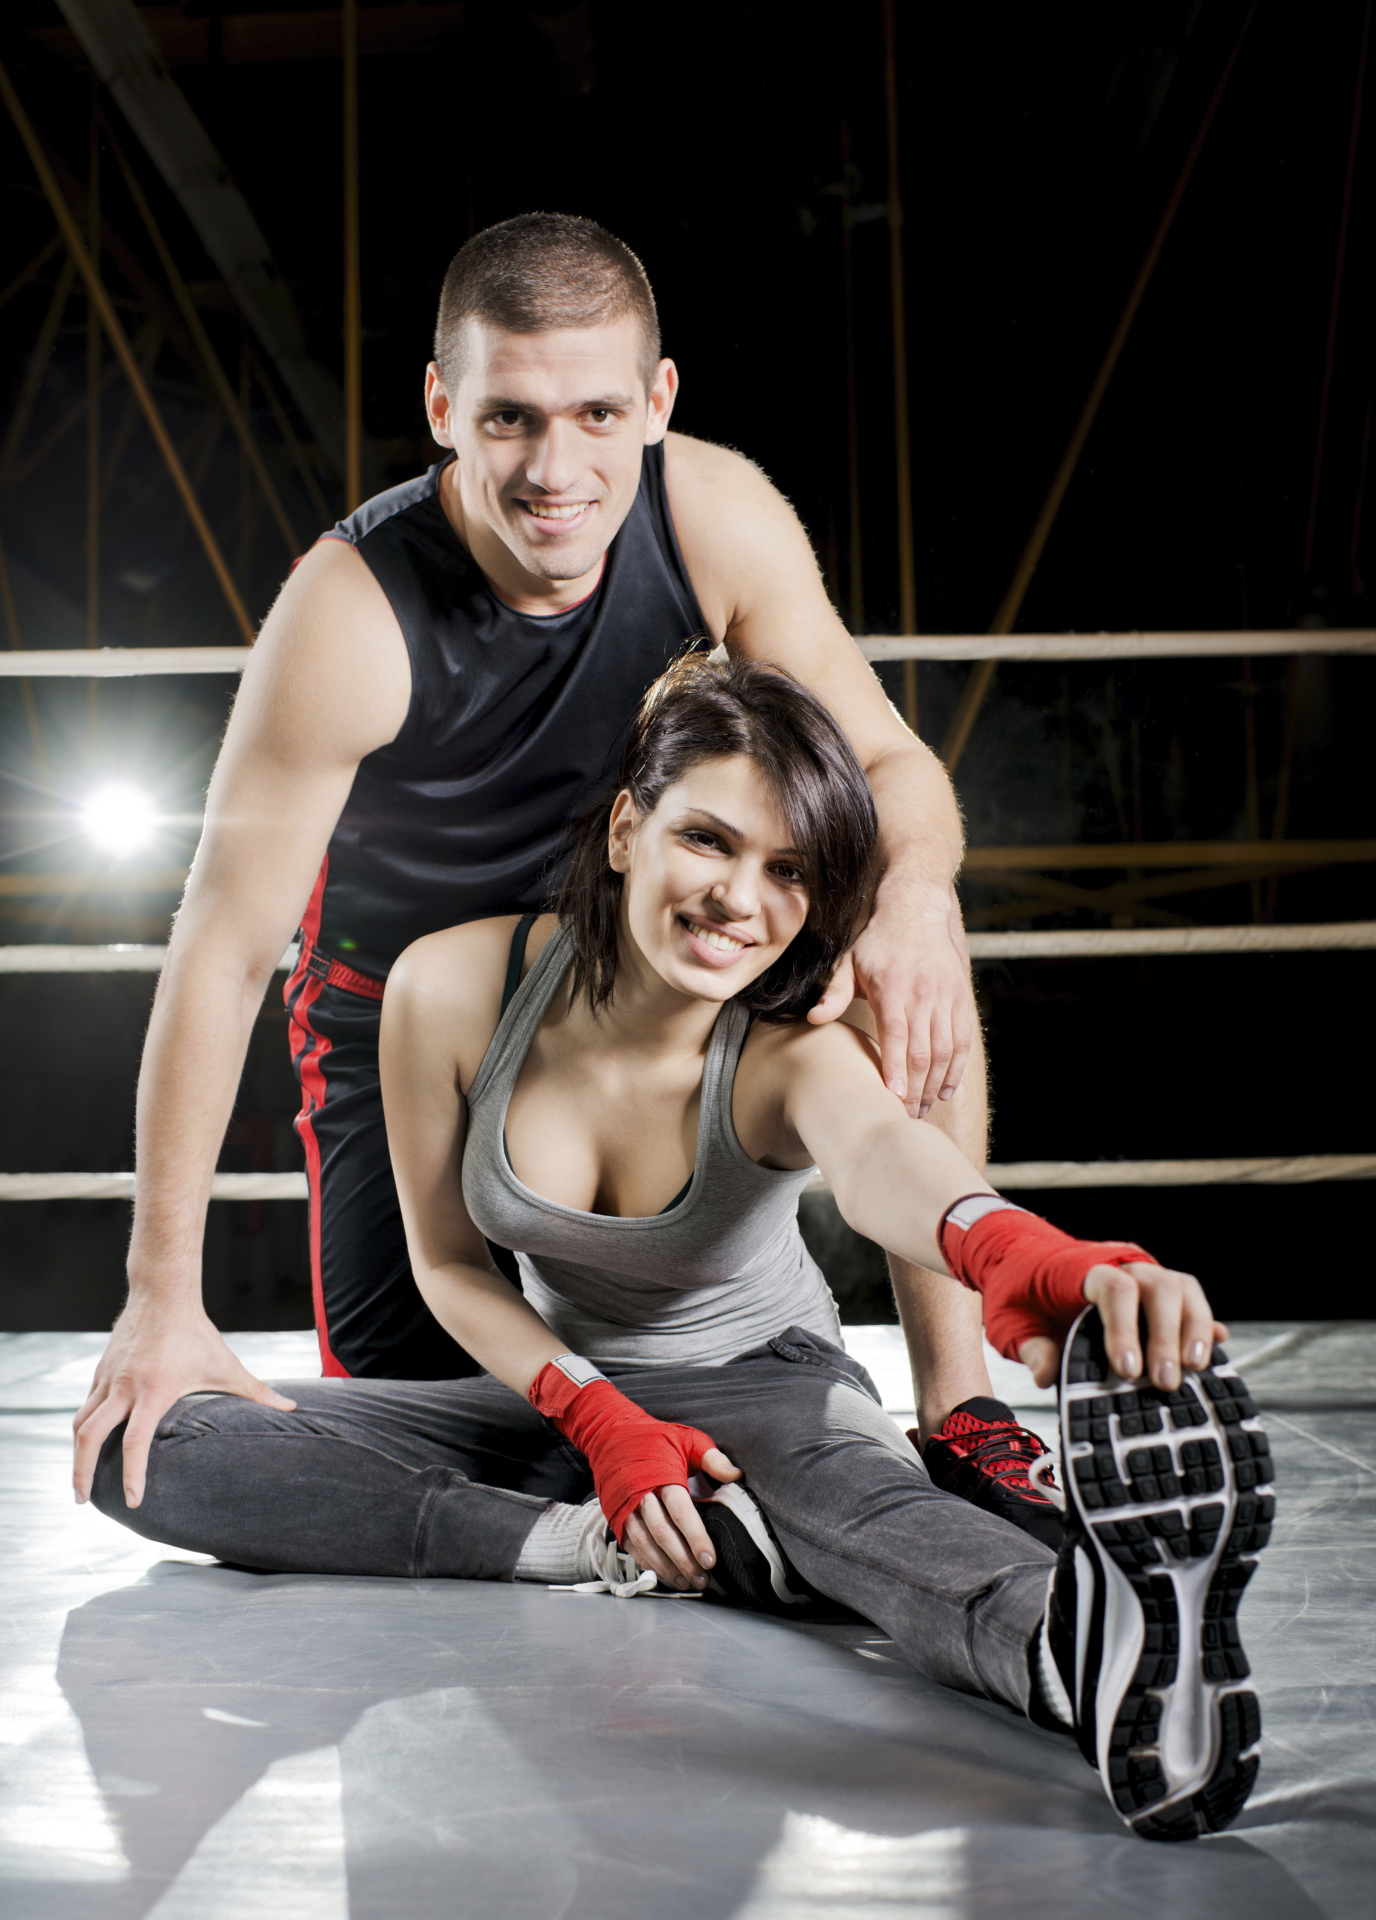 3 small ways to see BIG results in Kickboxing.